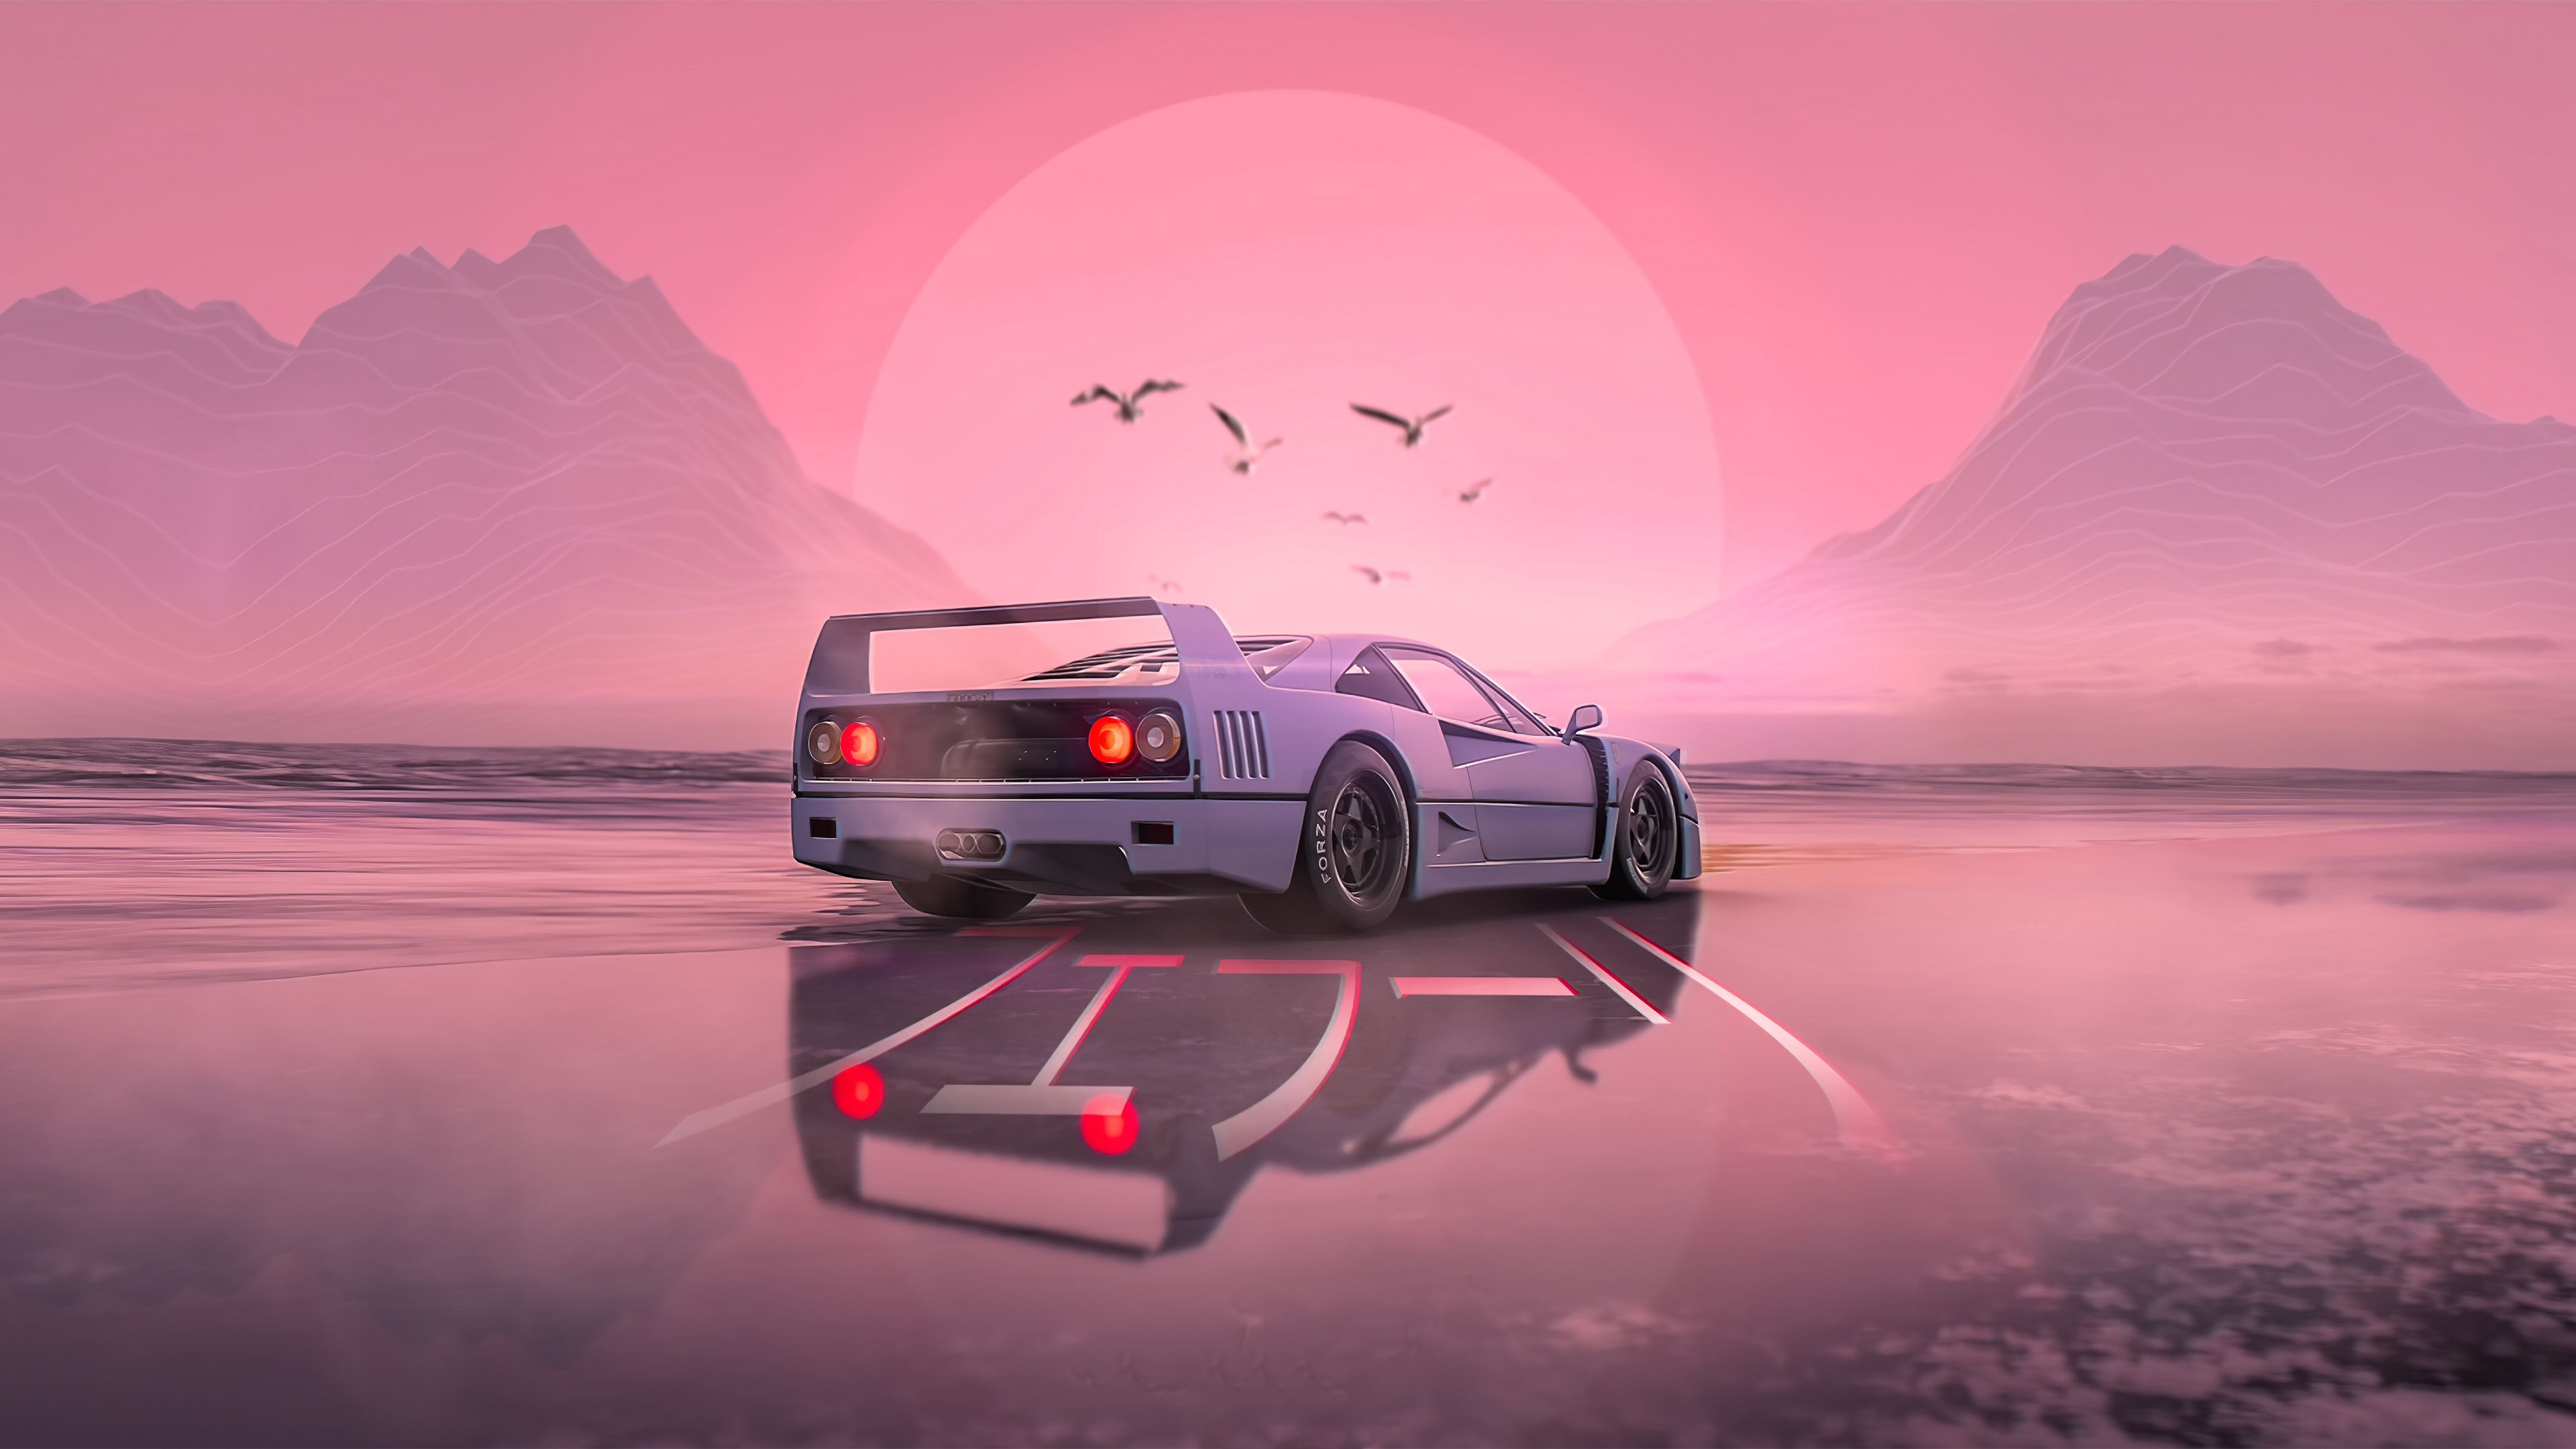 Retrowave F40 3840 X 2160 Computer Wallpaper Desktop Wallpapers Wallpaper Pc Desktop Wallpaper